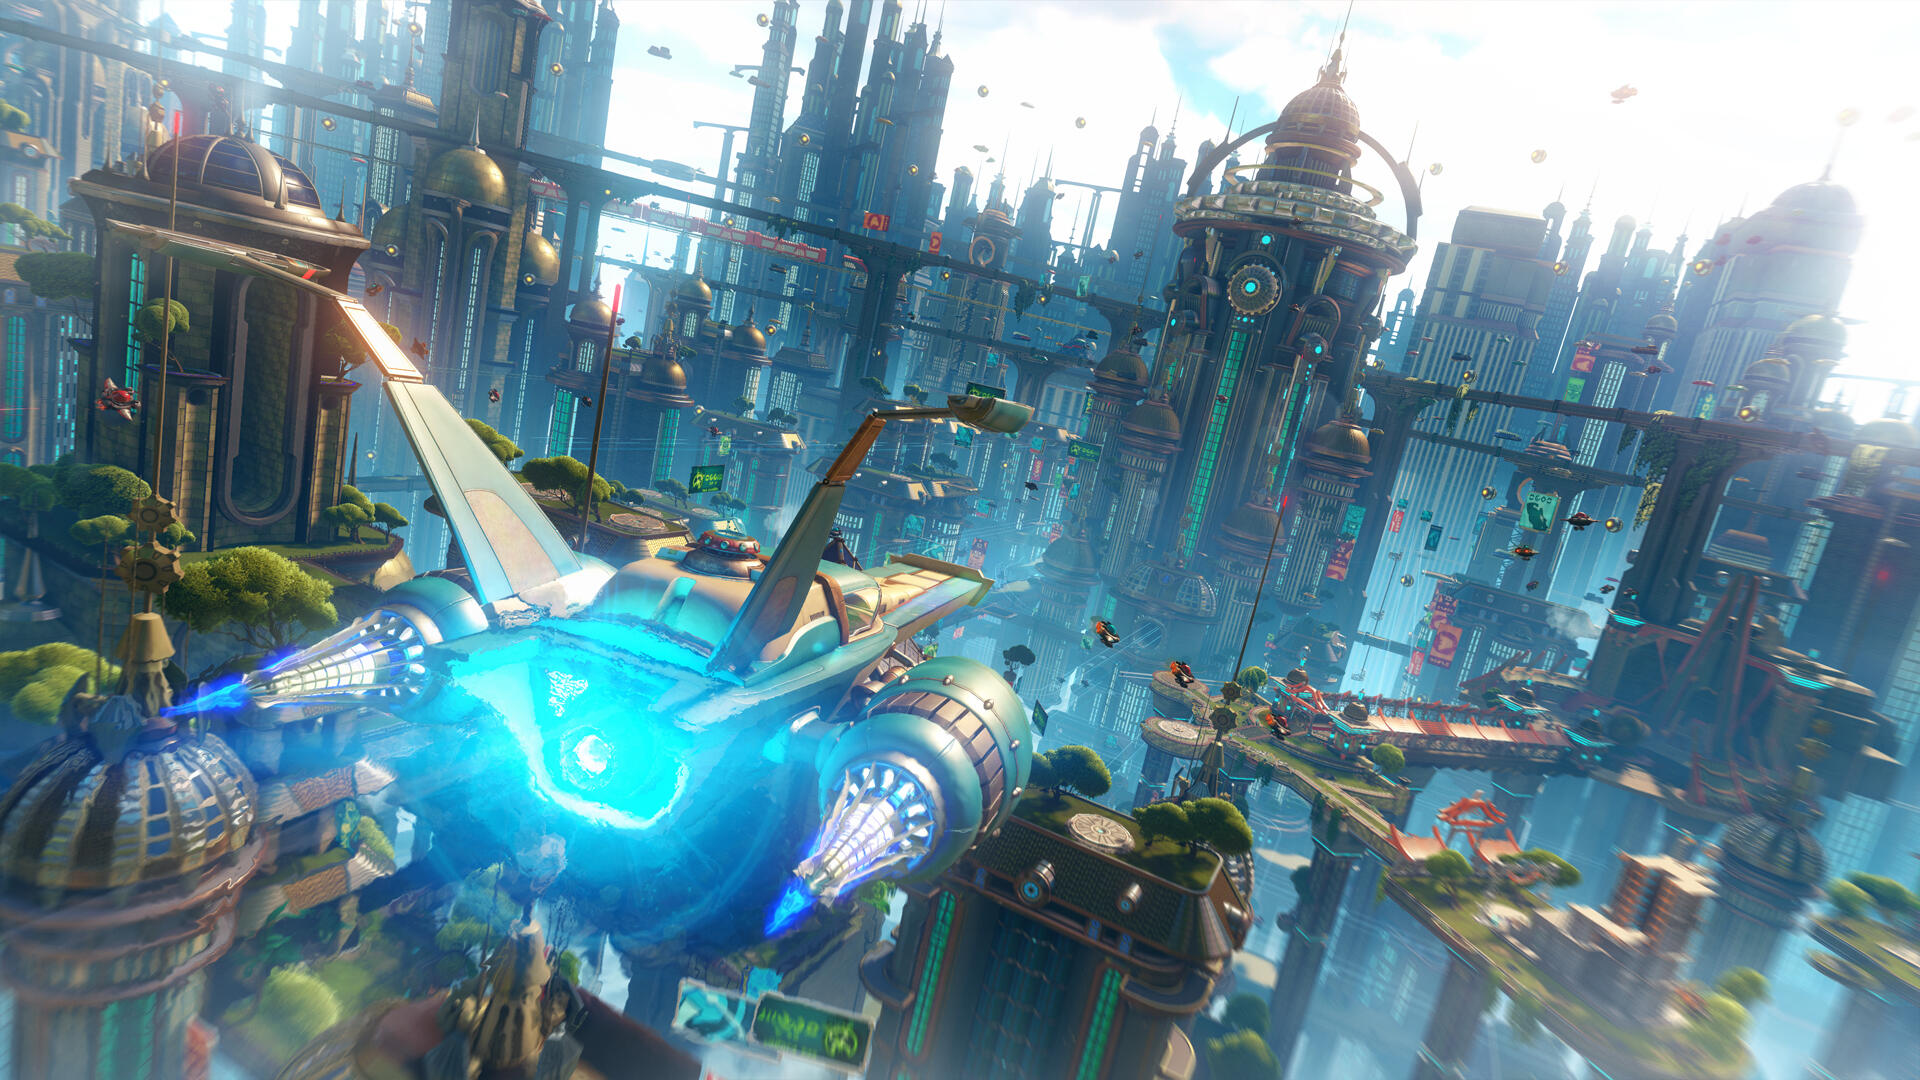 Ratchet and Clank PS4 Review: Triumphant Return